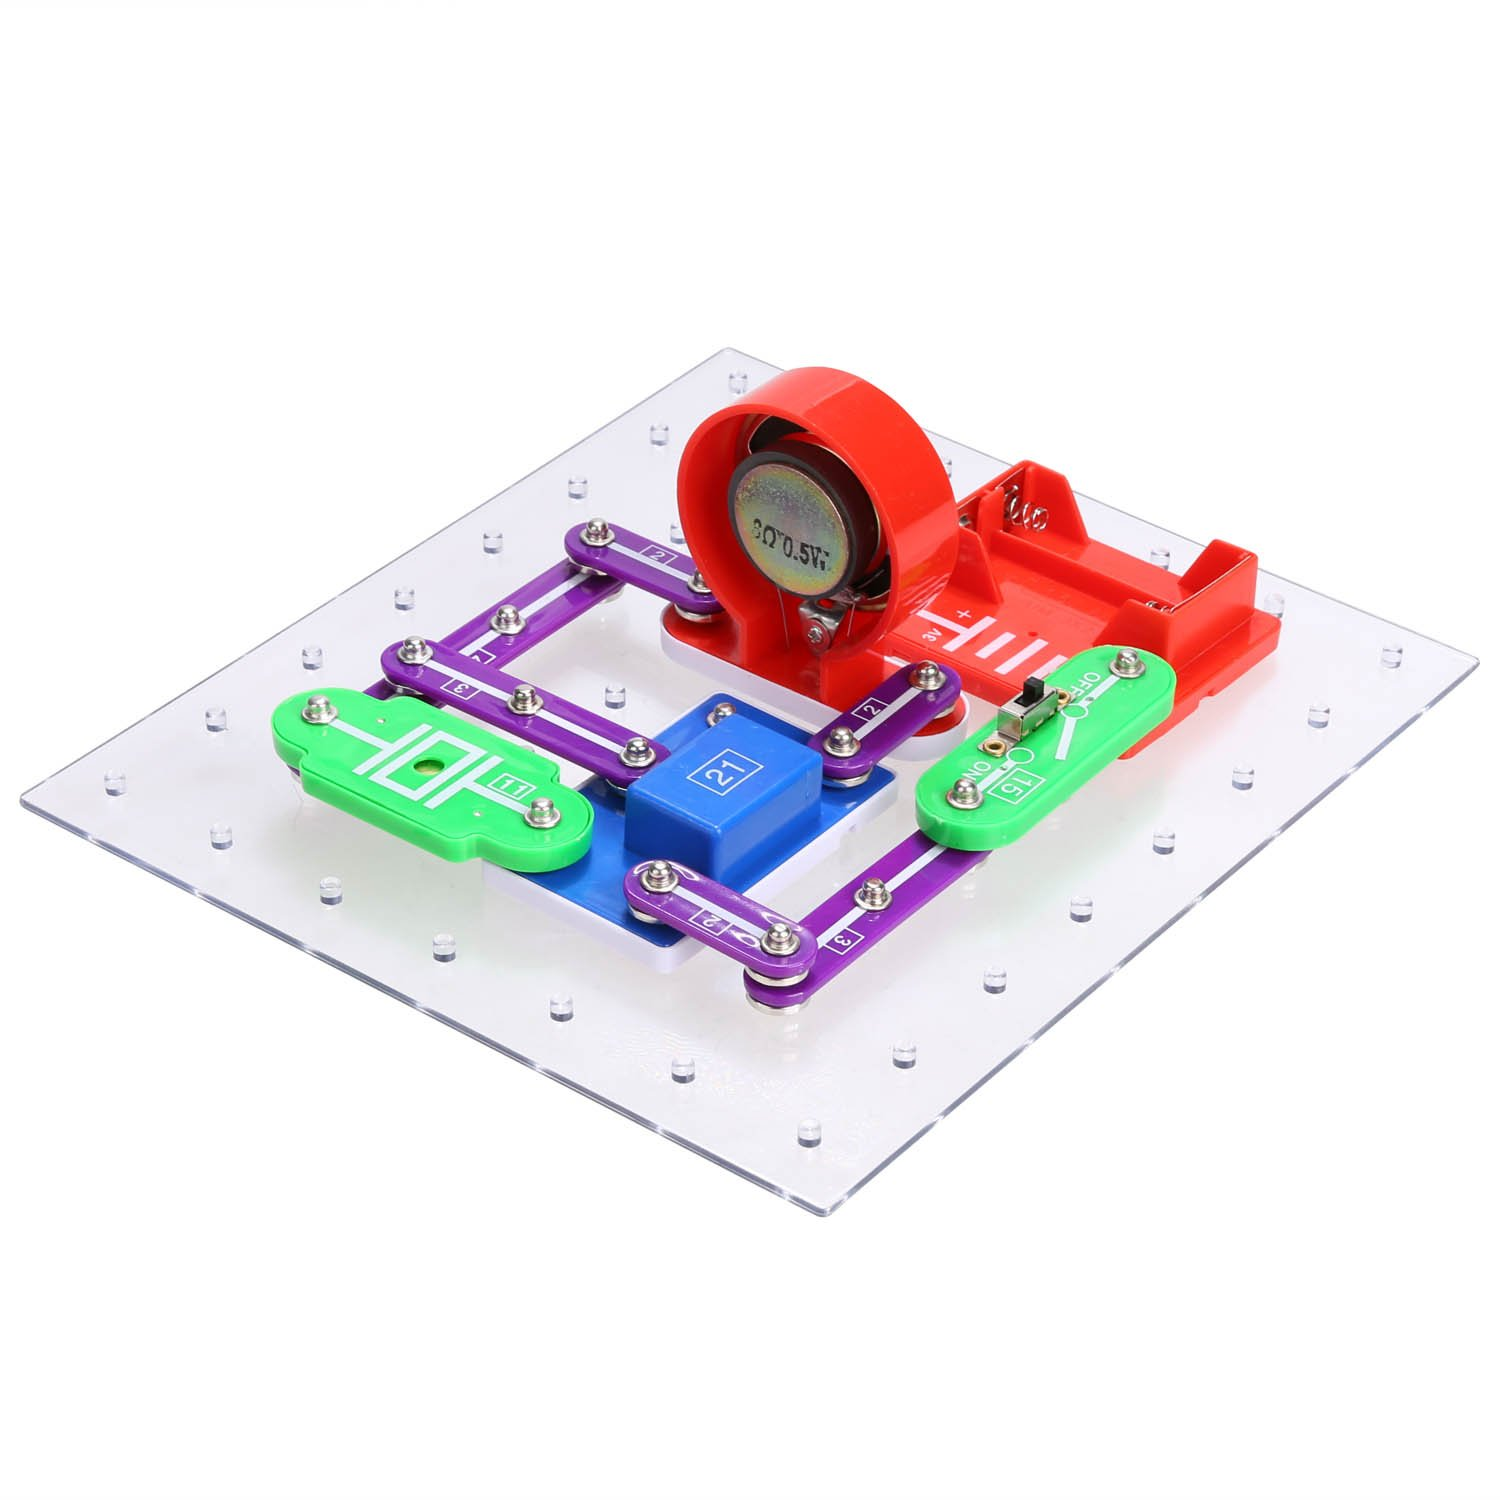 Arshiner 335 Electronics Discovery Kit Diy Electric Snap Circuits Lights Circuit Science By Elenco Block Educational Toy For Kids Toys Games